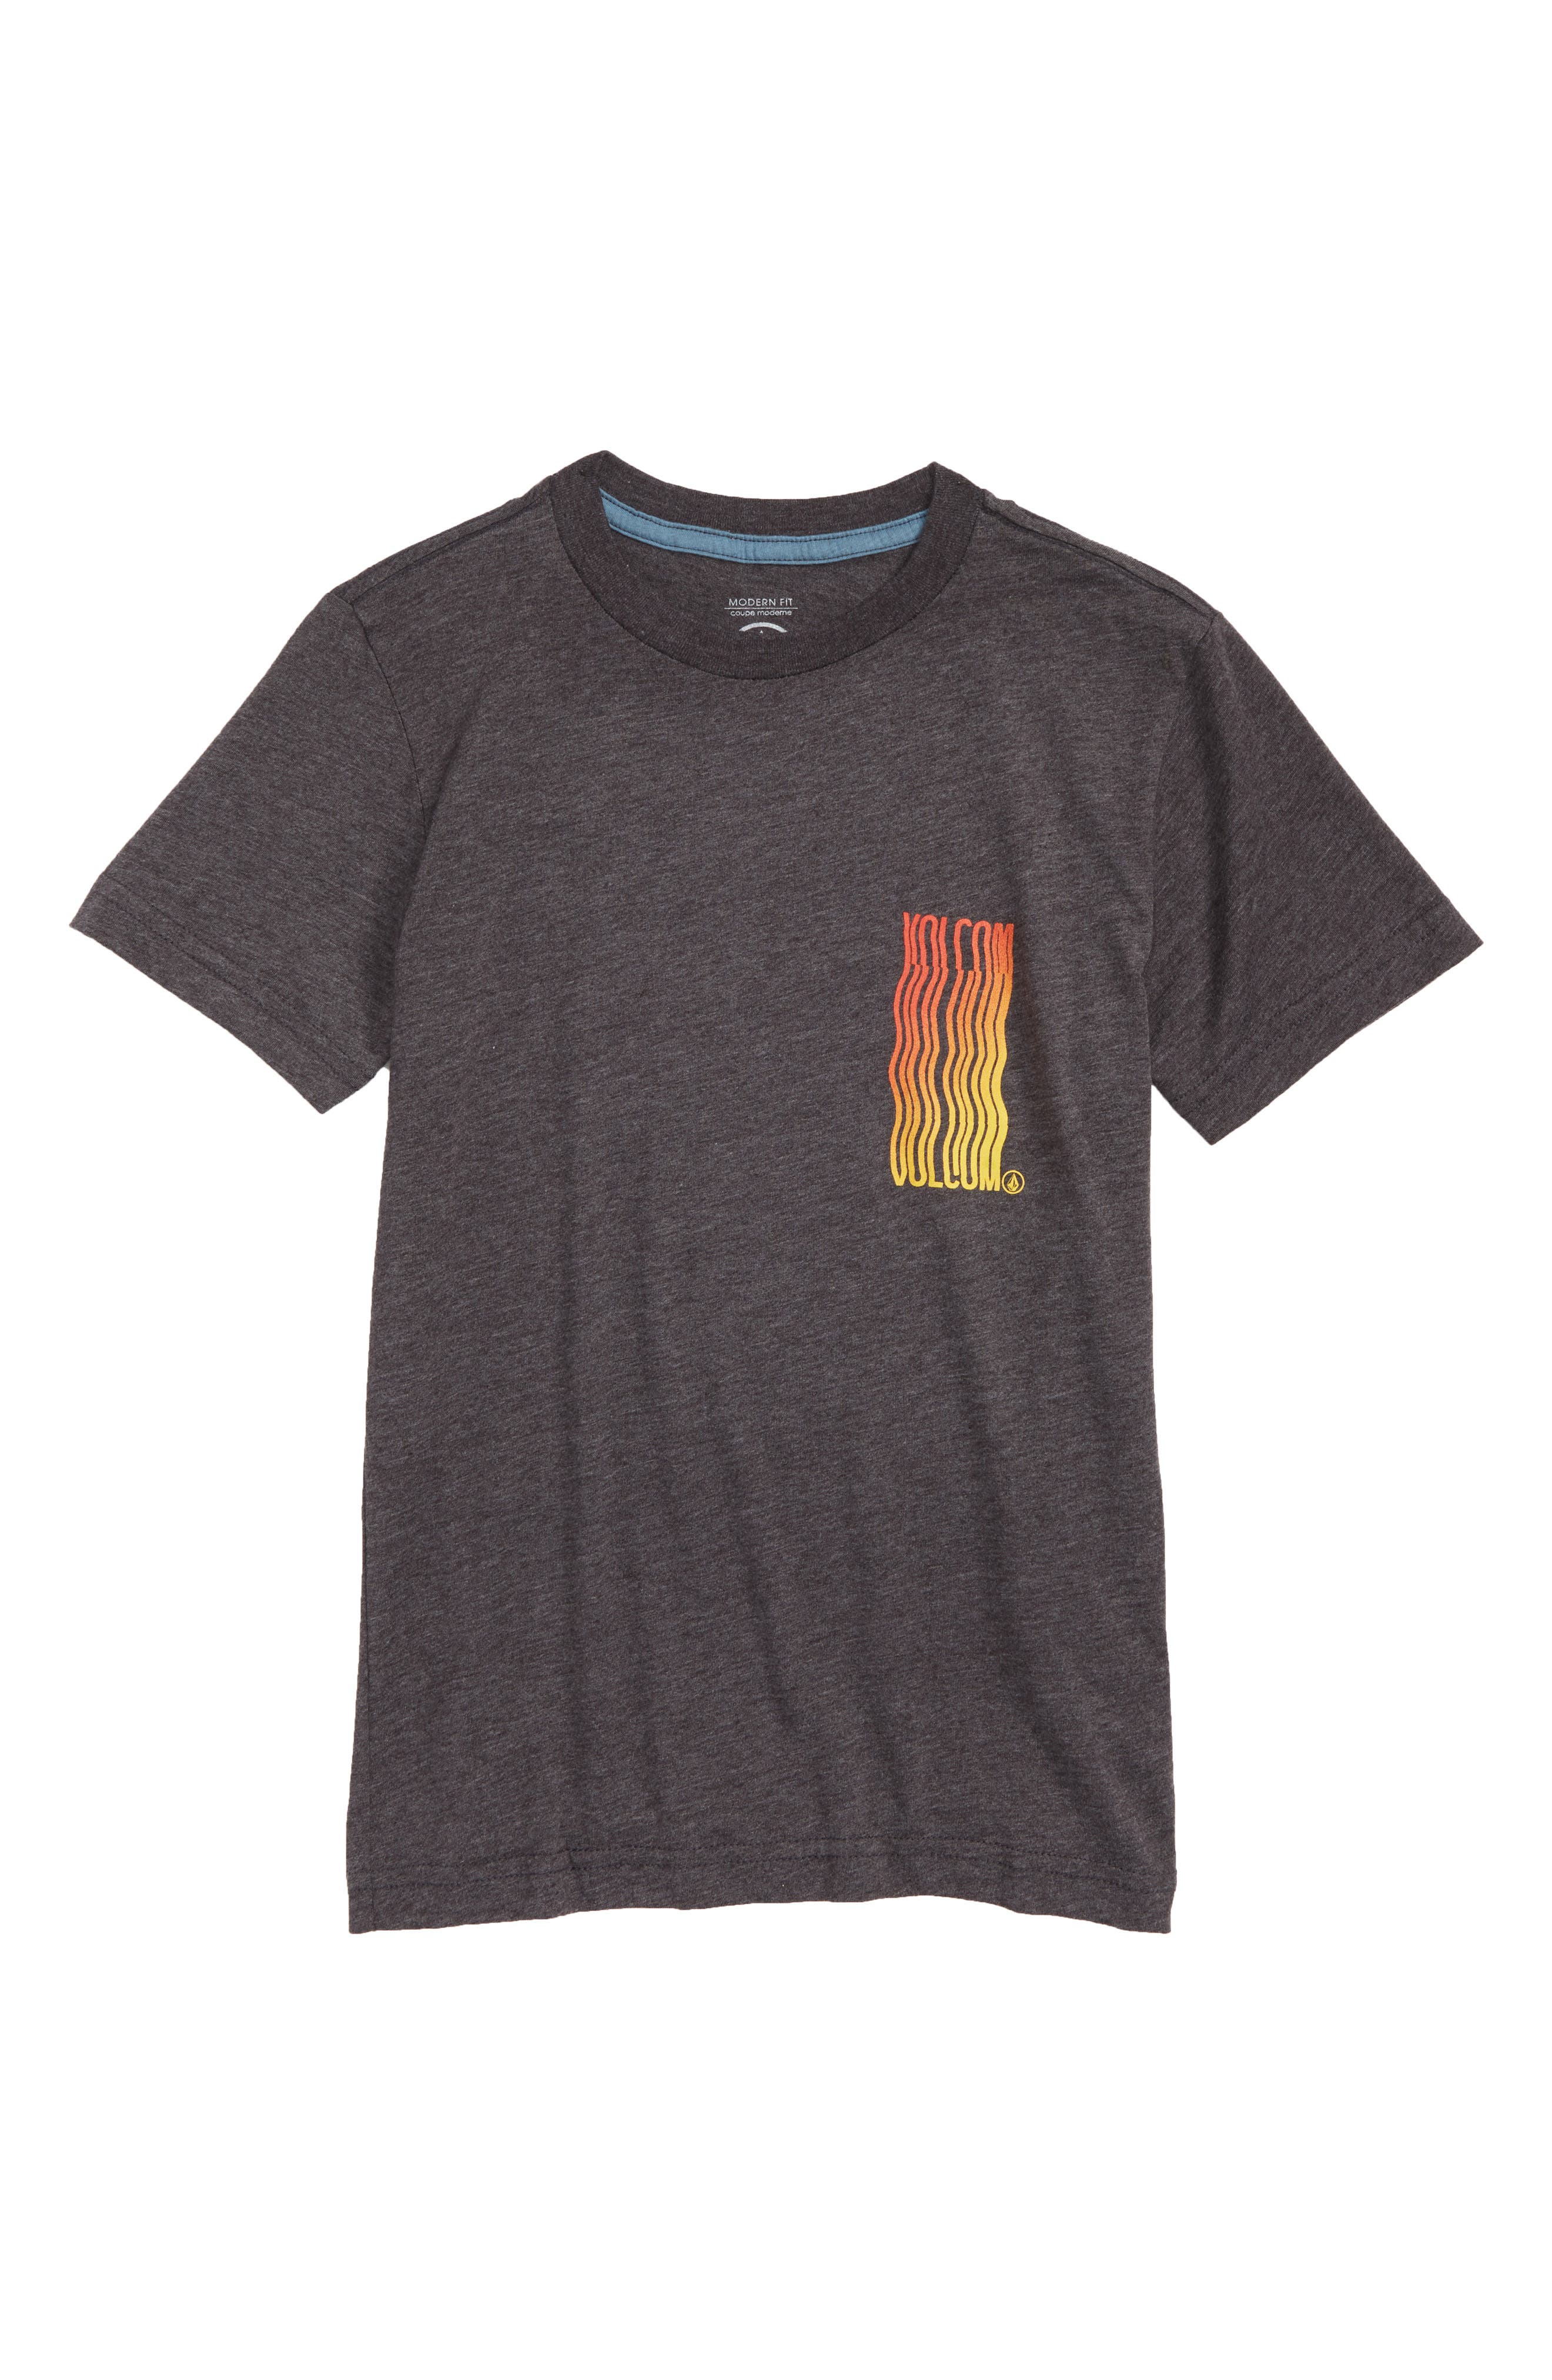 Extend Graphic T-Shirt,                         Main,                         color, 001